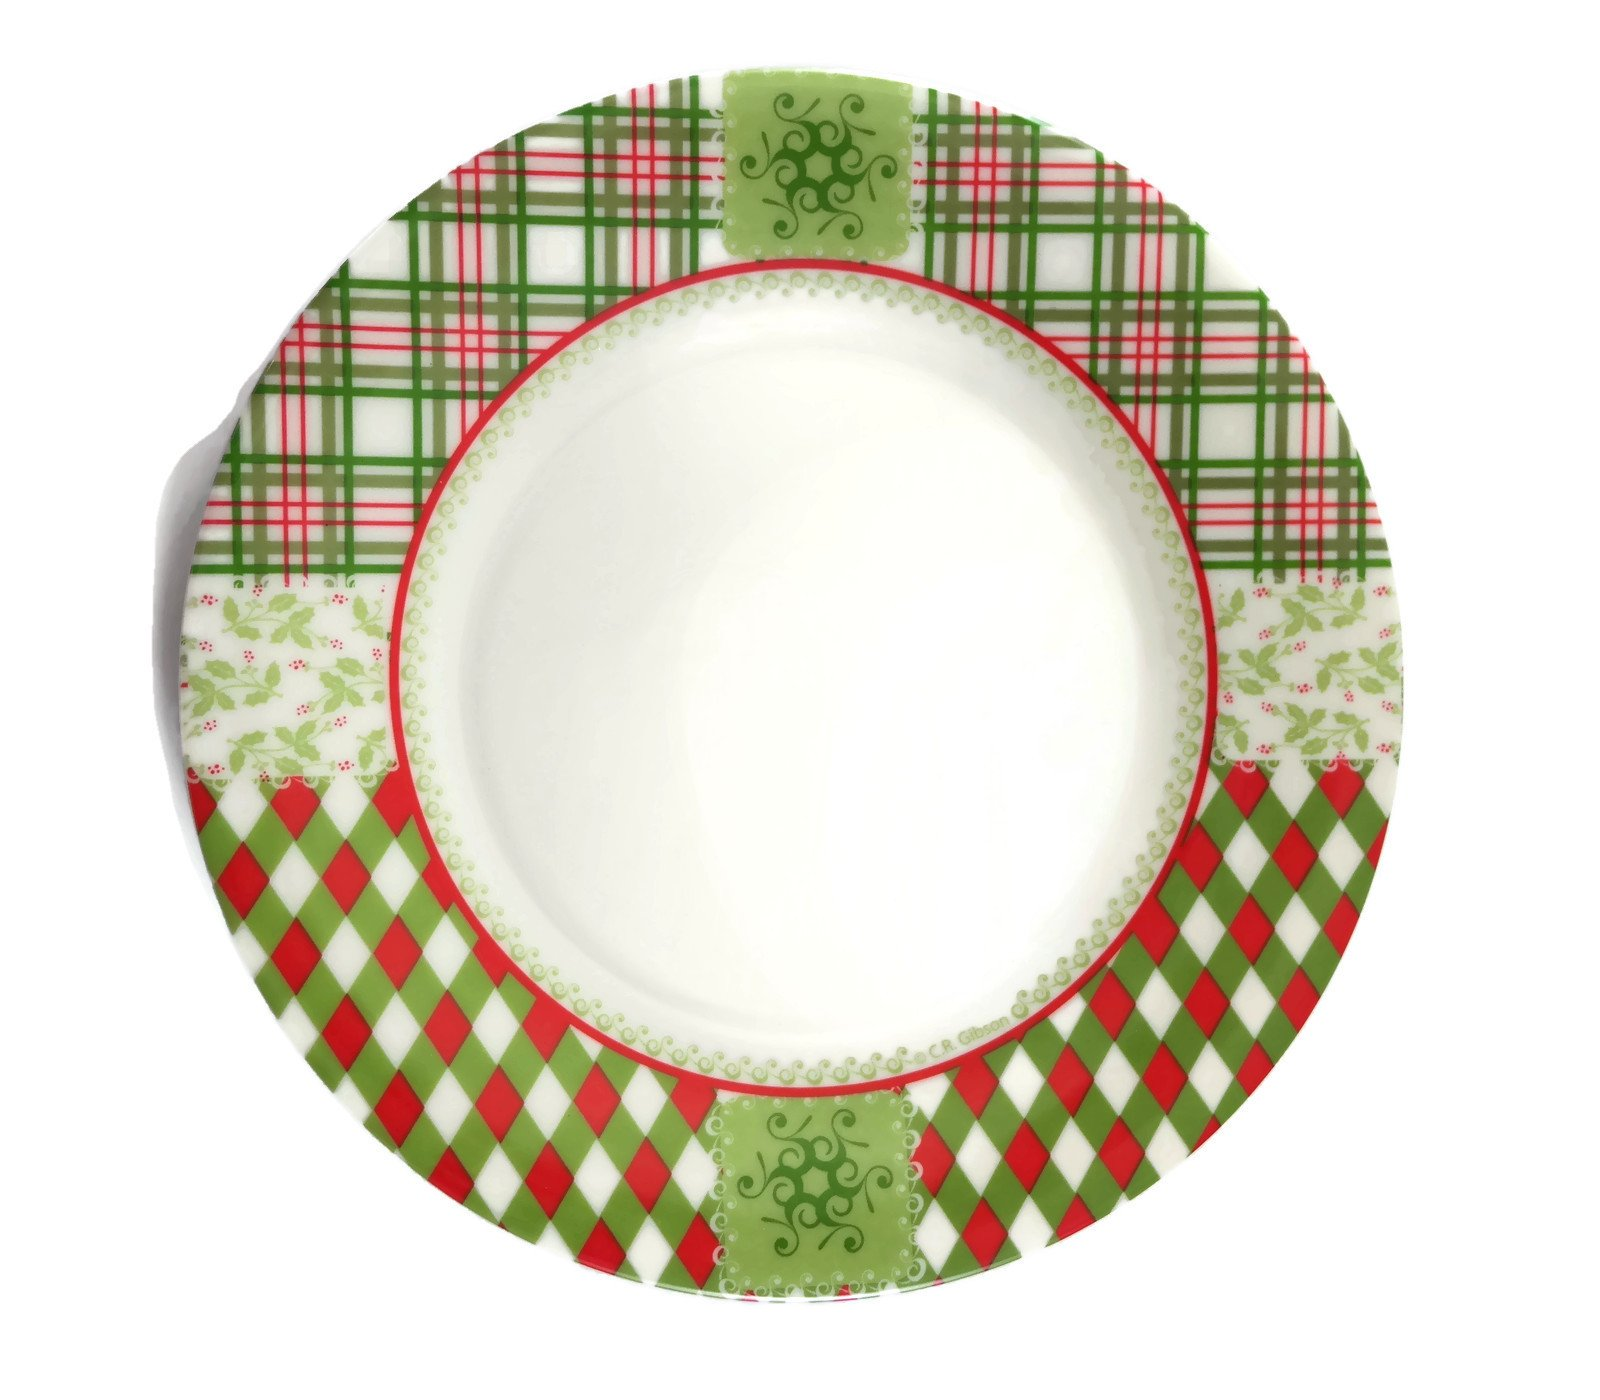 get quotations cr gibson green and red plaid classic christmas dessert plates set of 6 - Christmas Dishes Cheap